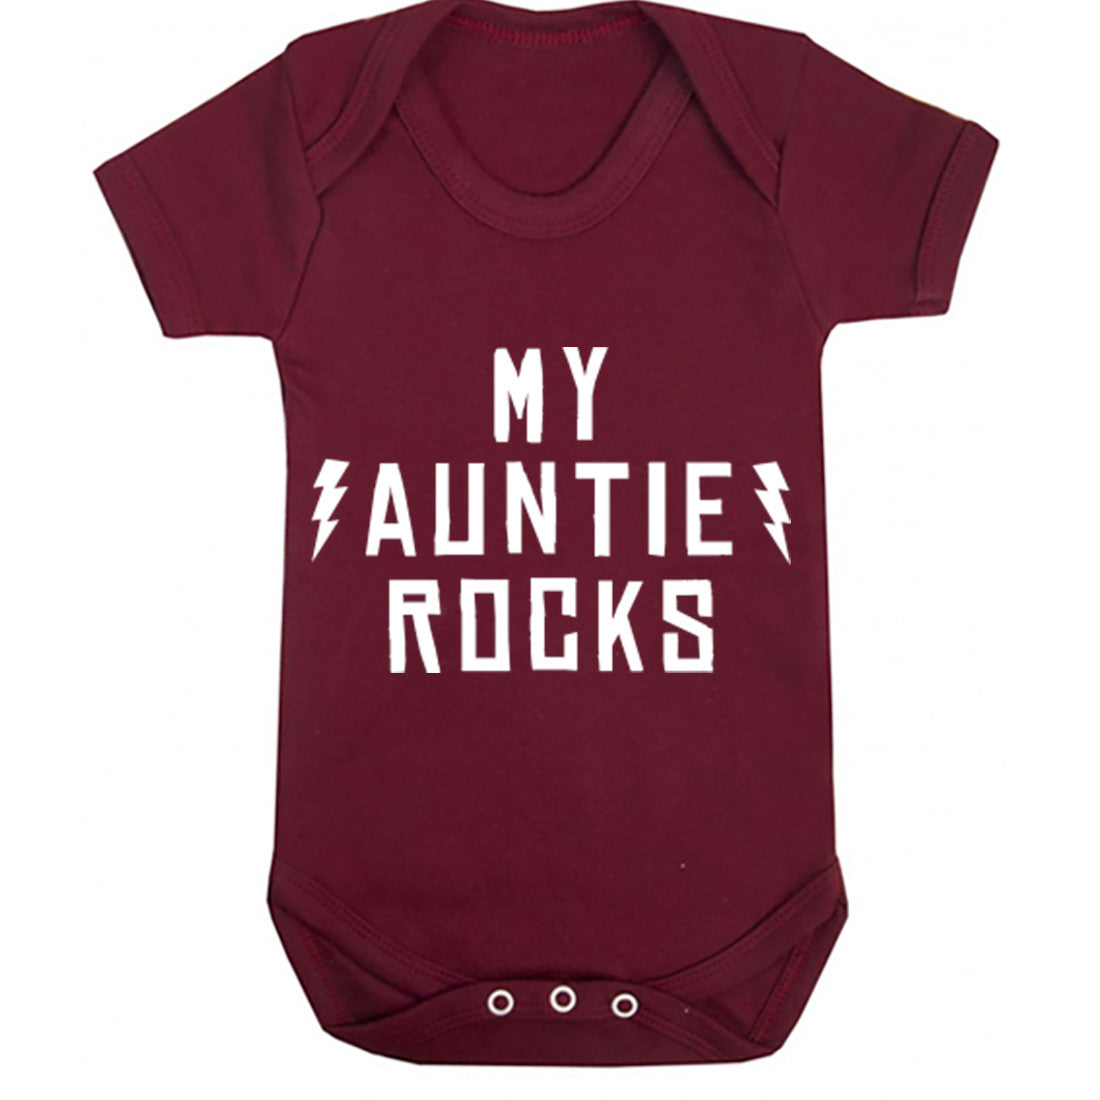 My Auntie Rocks Baby Vest K1202 - Illustrated Identity Ltd.